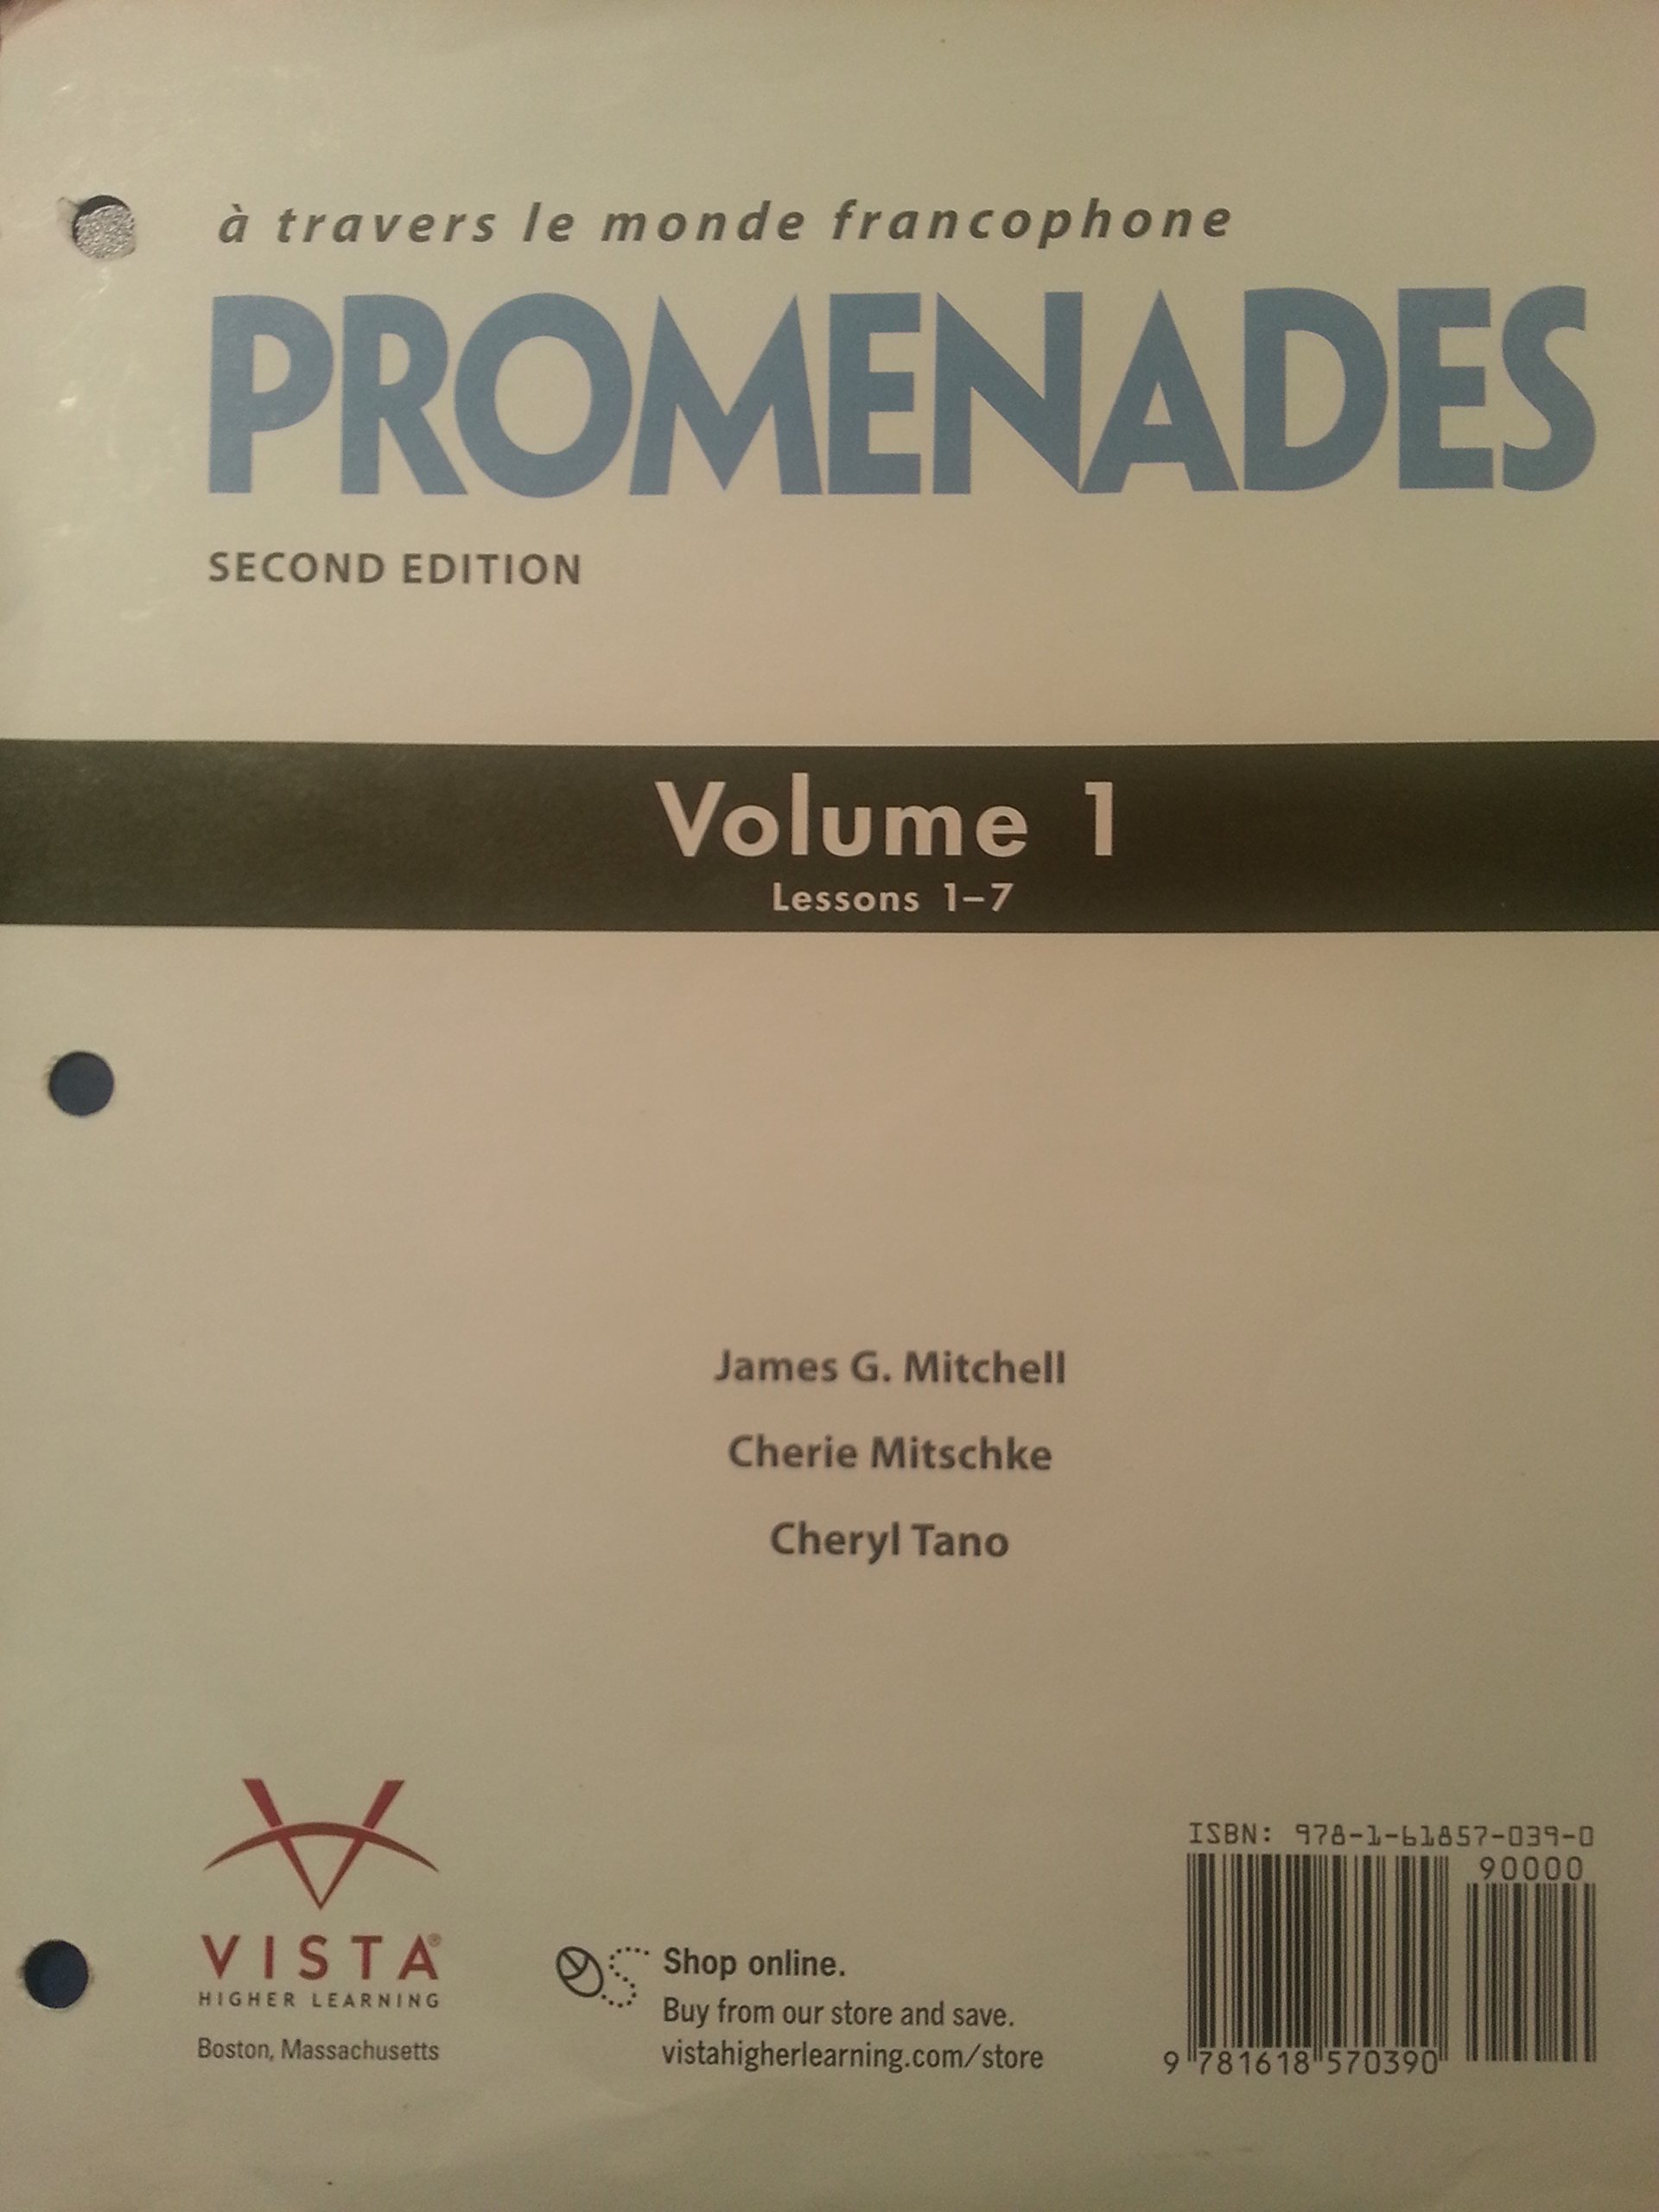 Promenades 2nd edition loose leaf volume 1 lessons 1 7 james g promenades 2nd edition loose leaf volume 1 lessons 1 7 james g mitchell cherie mitschke cheryl tano 9781618570390 amazon books fandeluxe Gallery